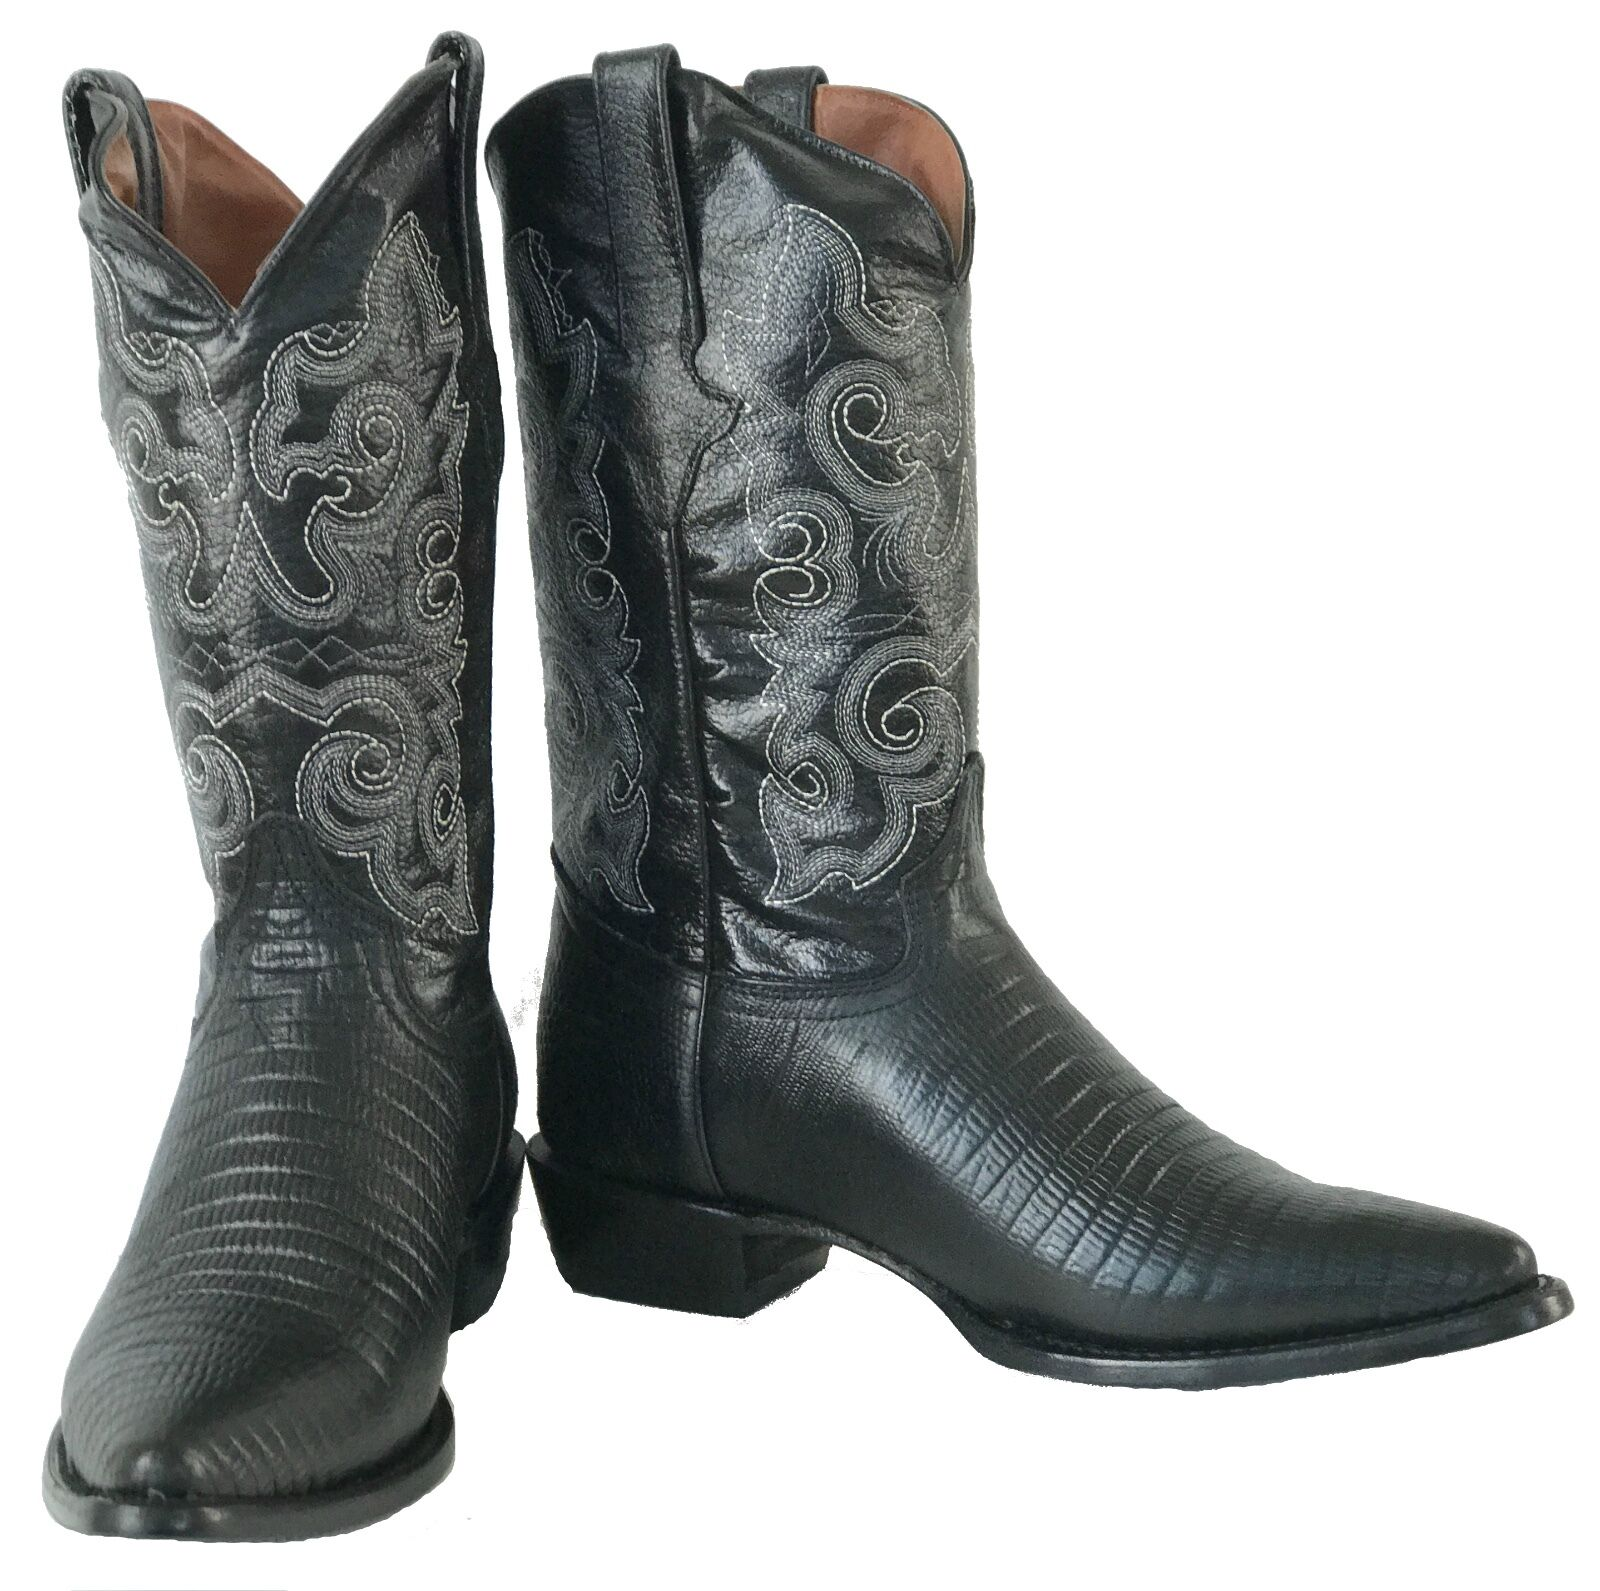 Men's New Exotic Exotic Exotic Lizard Design Leather Cowboy Western Rodeo stivali nero J Toe 4d2aba